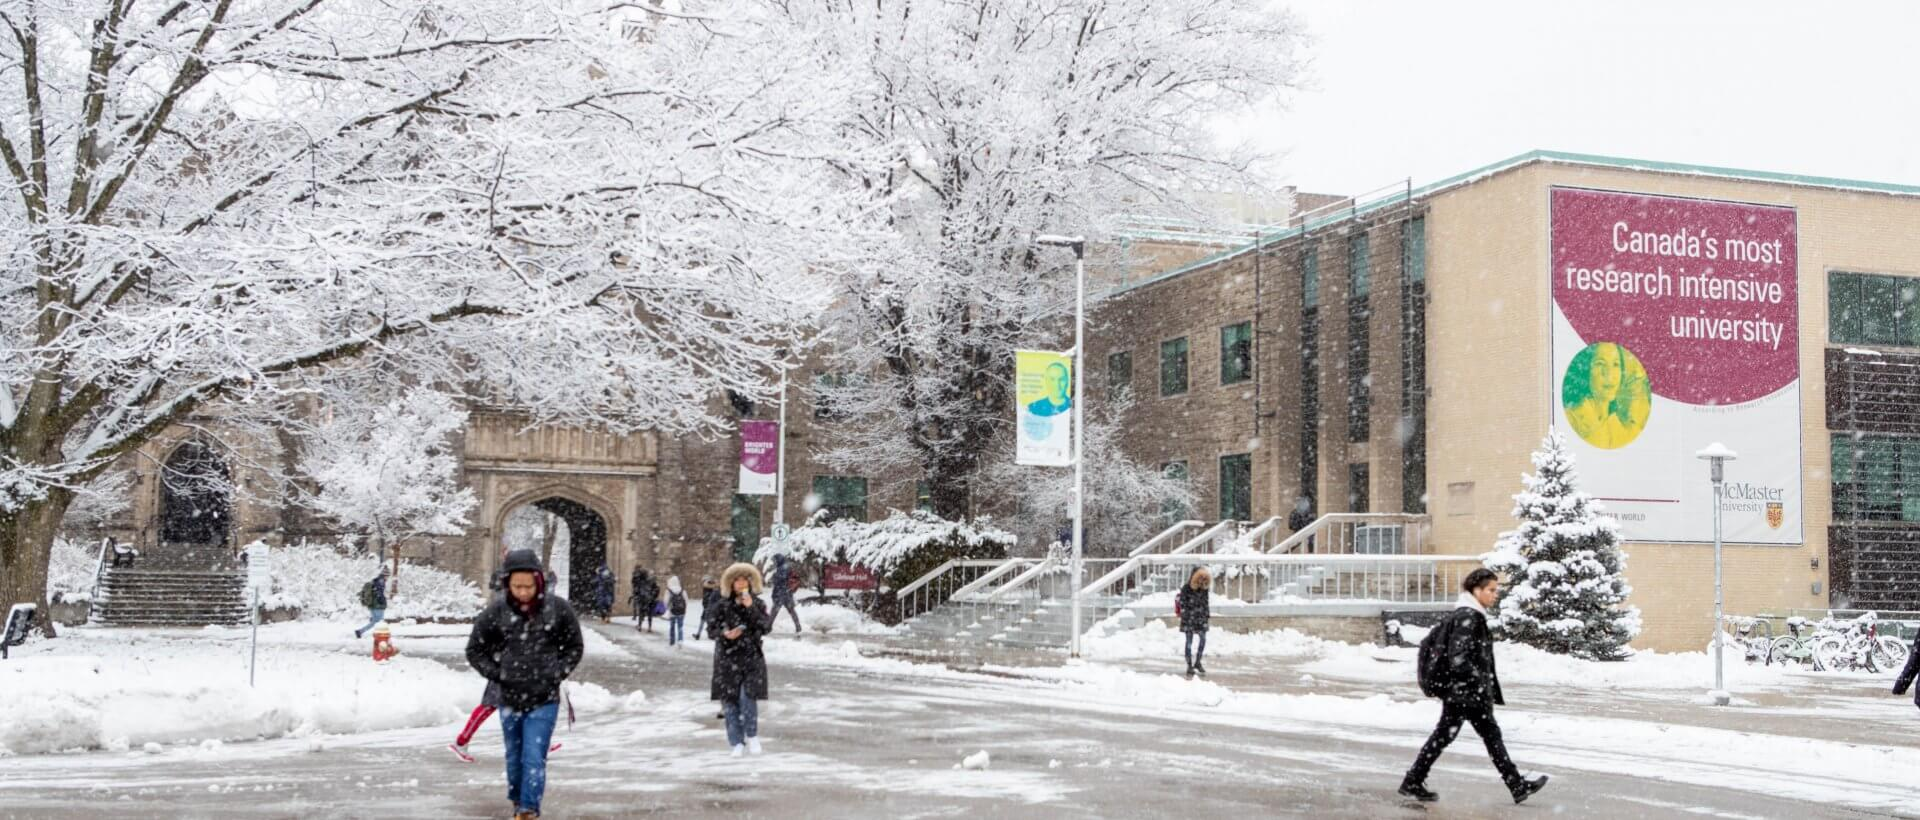 Students walking to class by University Hall, McMaster campus. Winter, snowing.